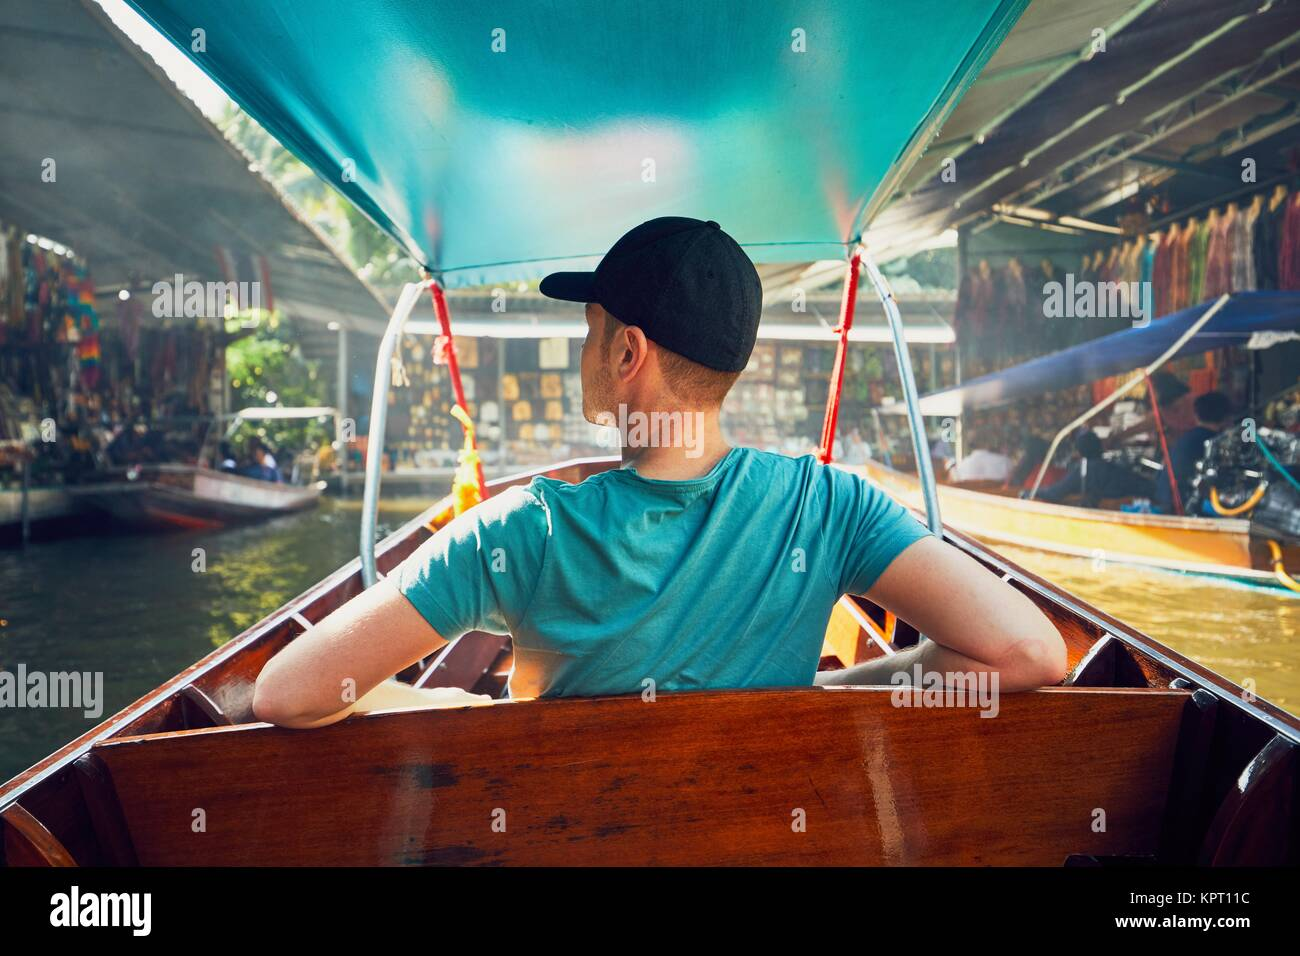 Young man (traveler) on the boat. Traditional floating market Damnoen Saduak in Ratchaburi near Bangkok, Thailand. - Stock Image